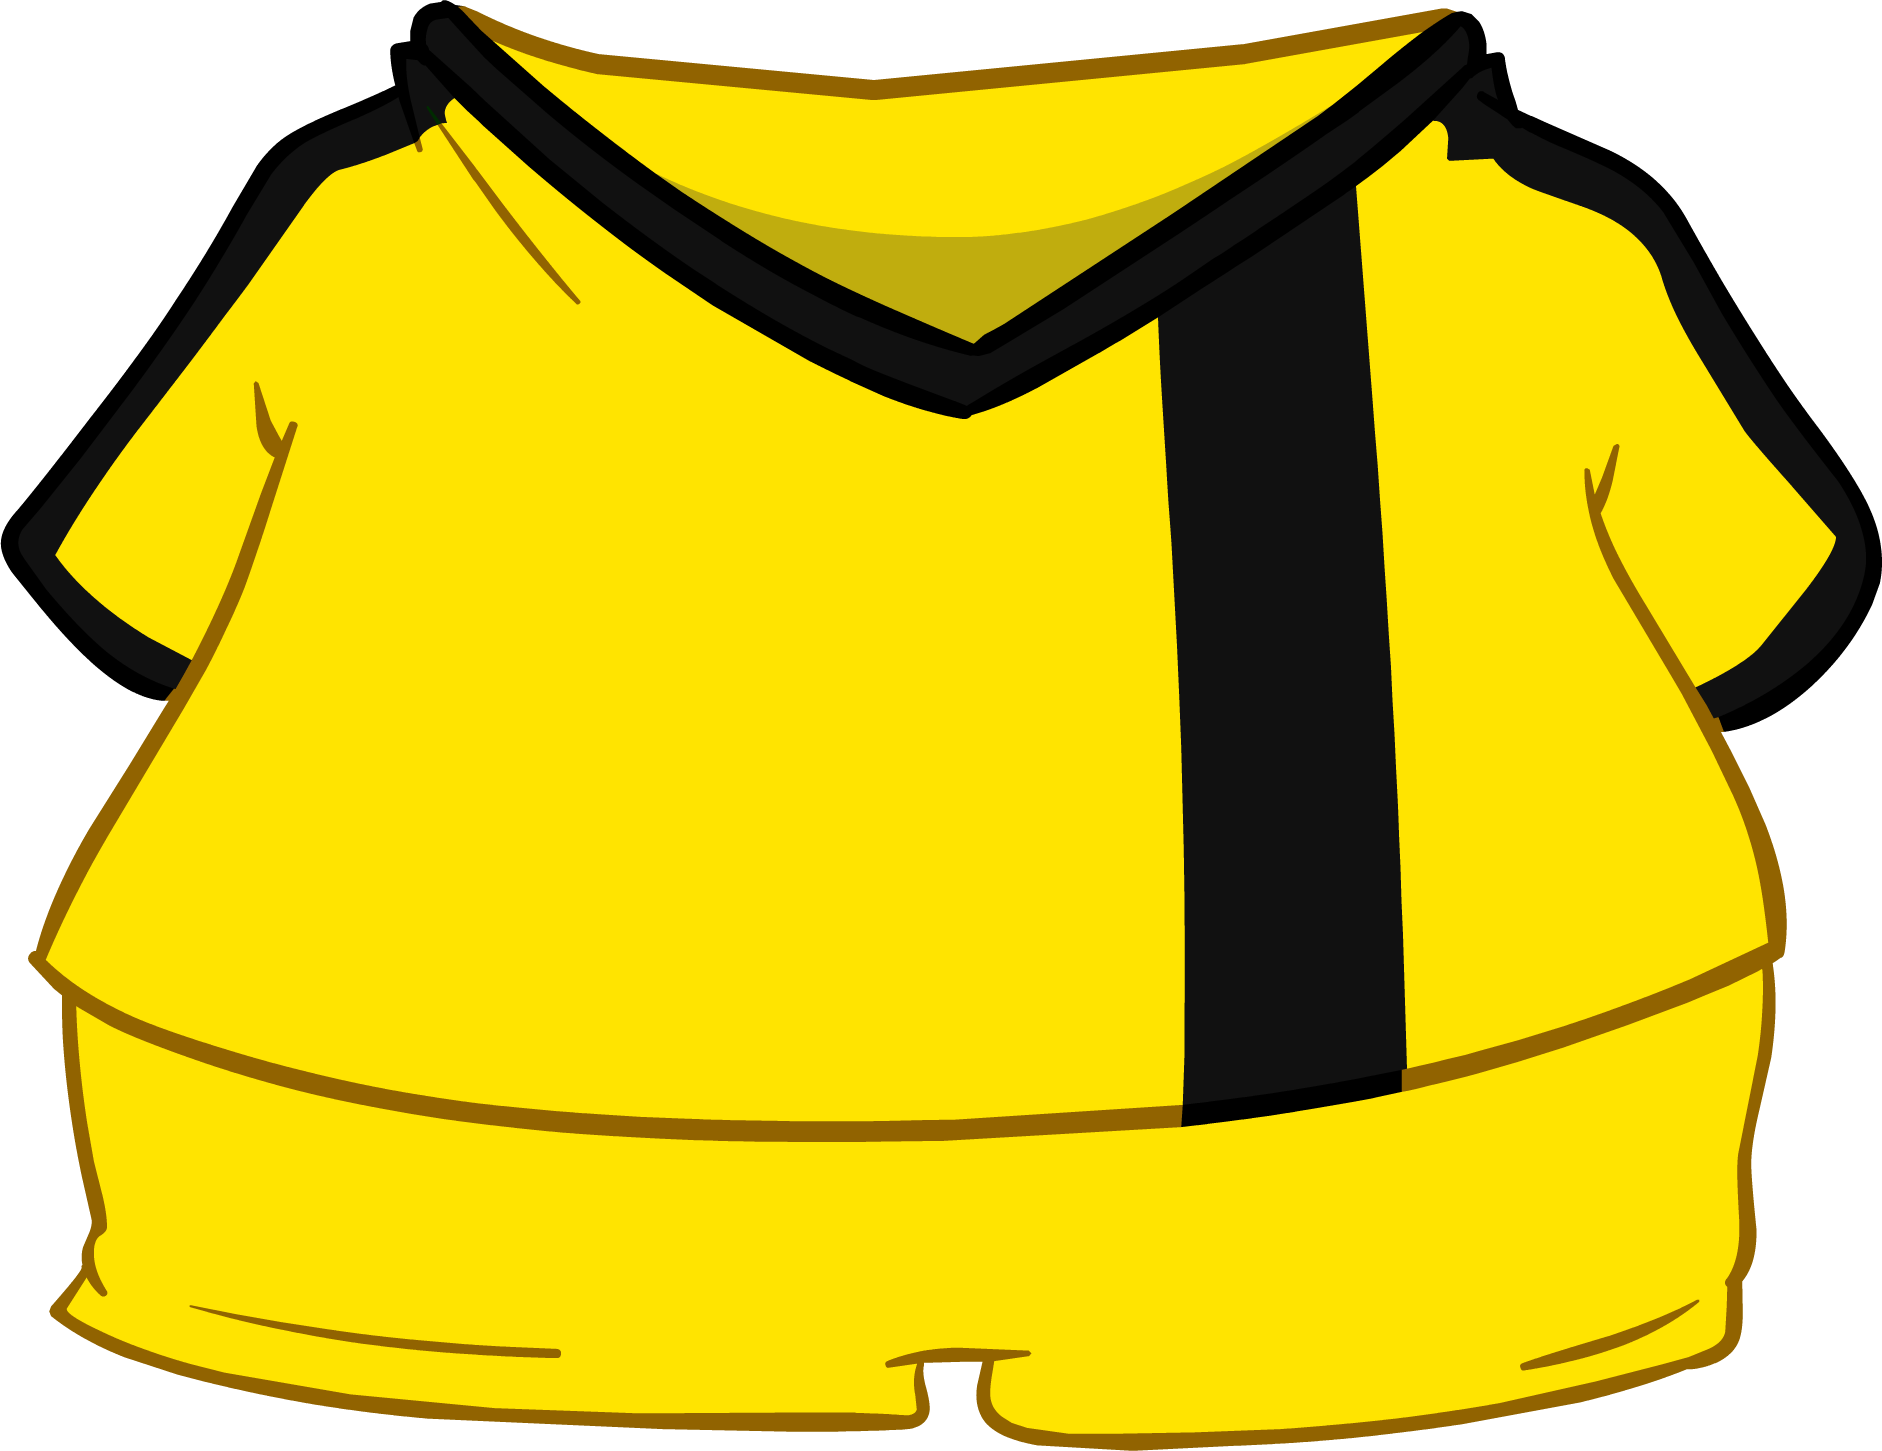 Free football jersey clipart clipart transparent library Football Jersey Clipart at GetDrawings.com | Free for personal use ... clipart transparent library